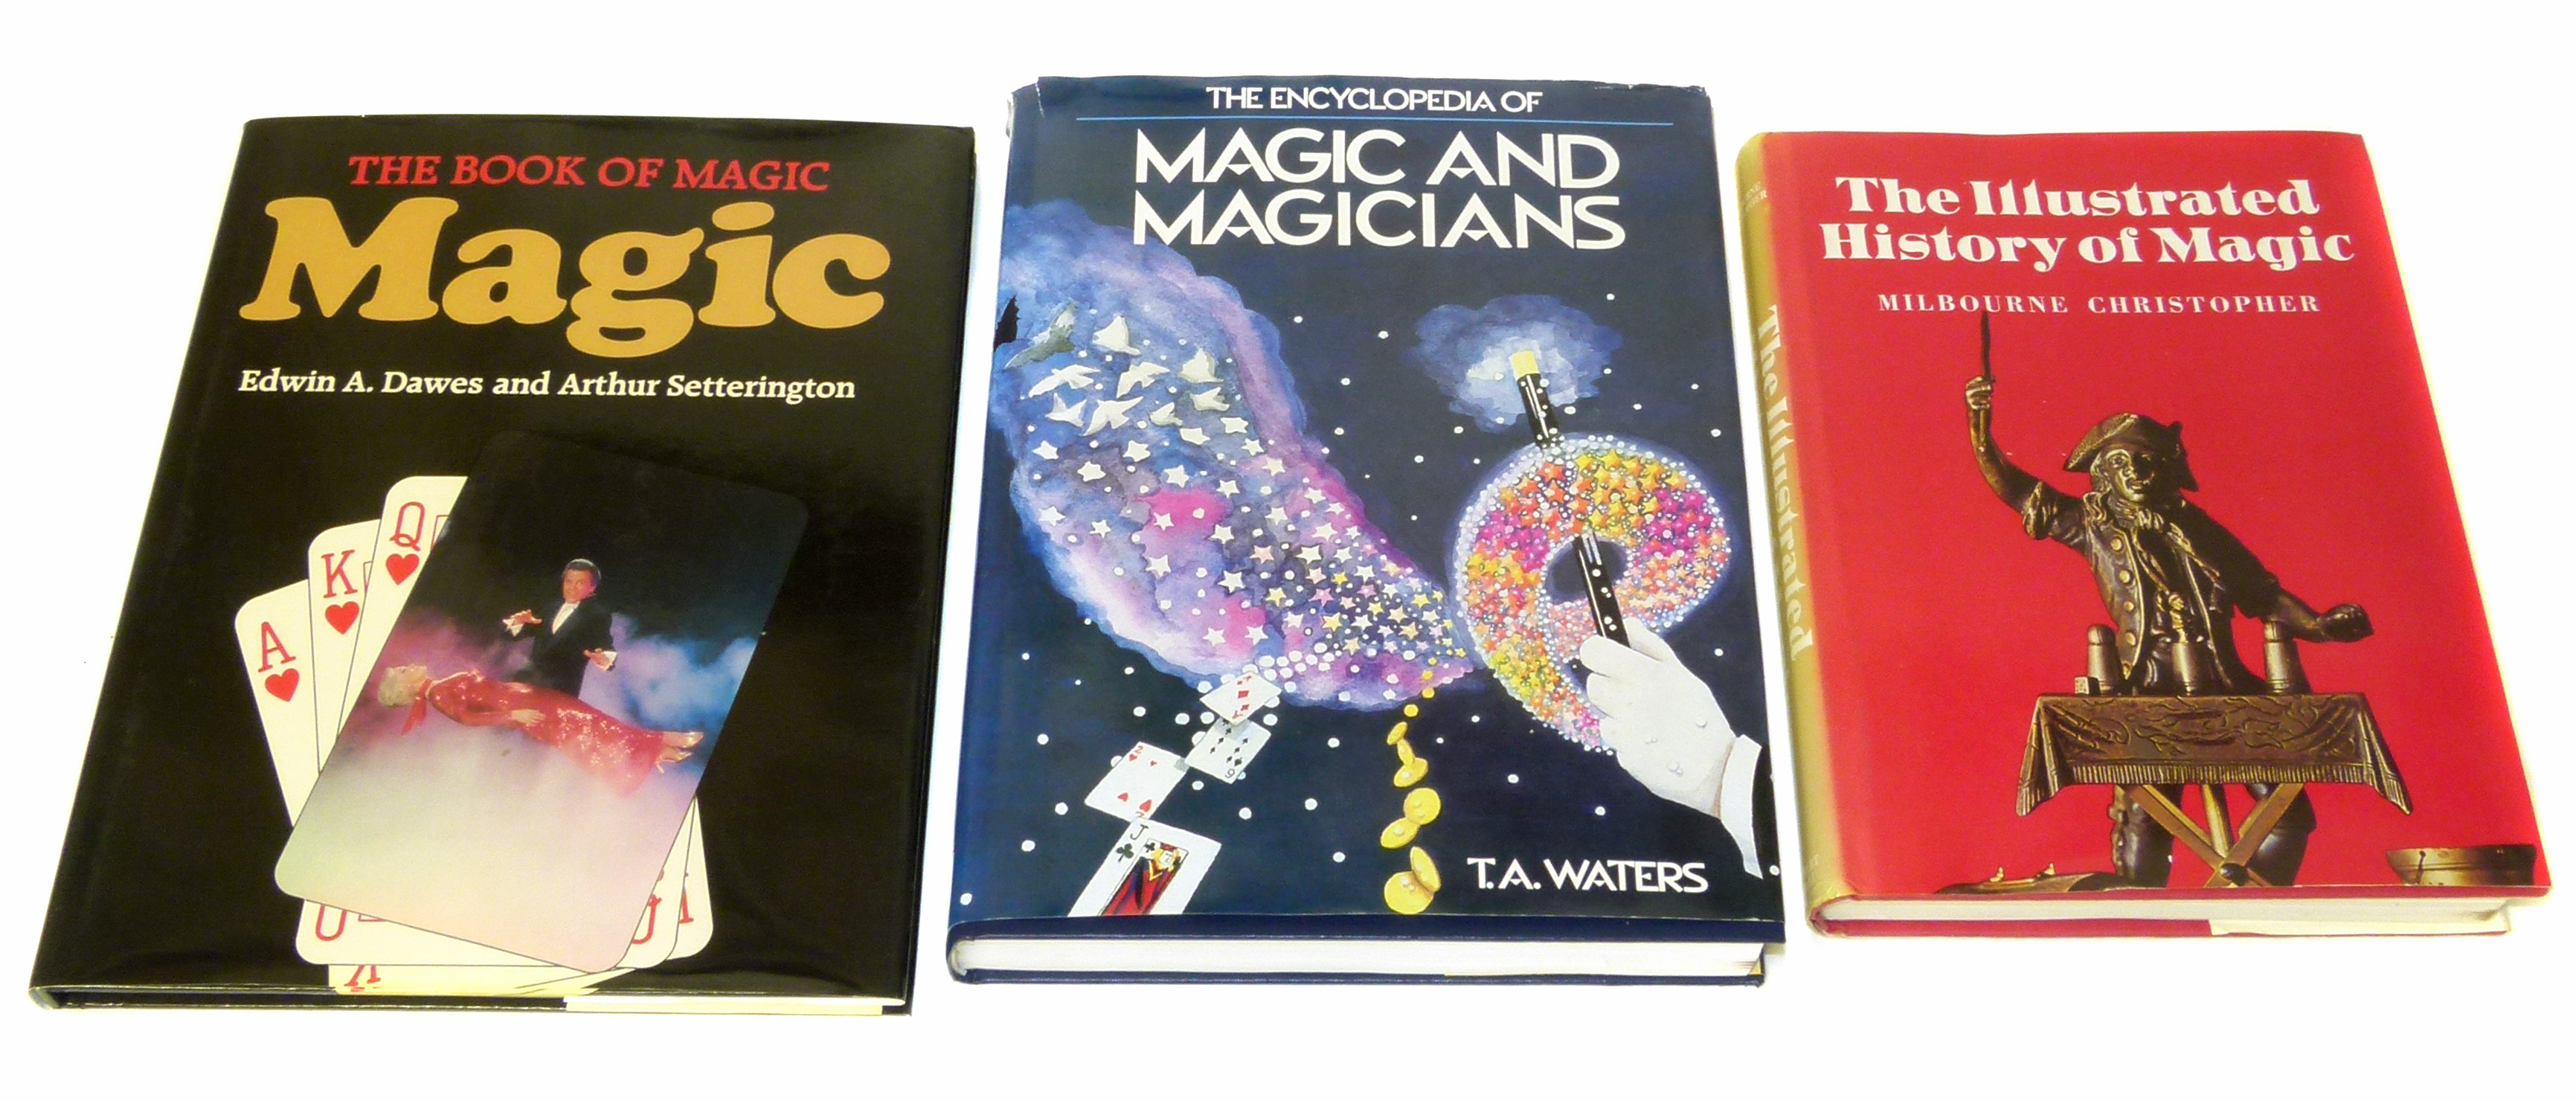 Lot 24 - Waters, T., Encyclopedia of Magic and Magicians and two other similar volumes. We are unable to do